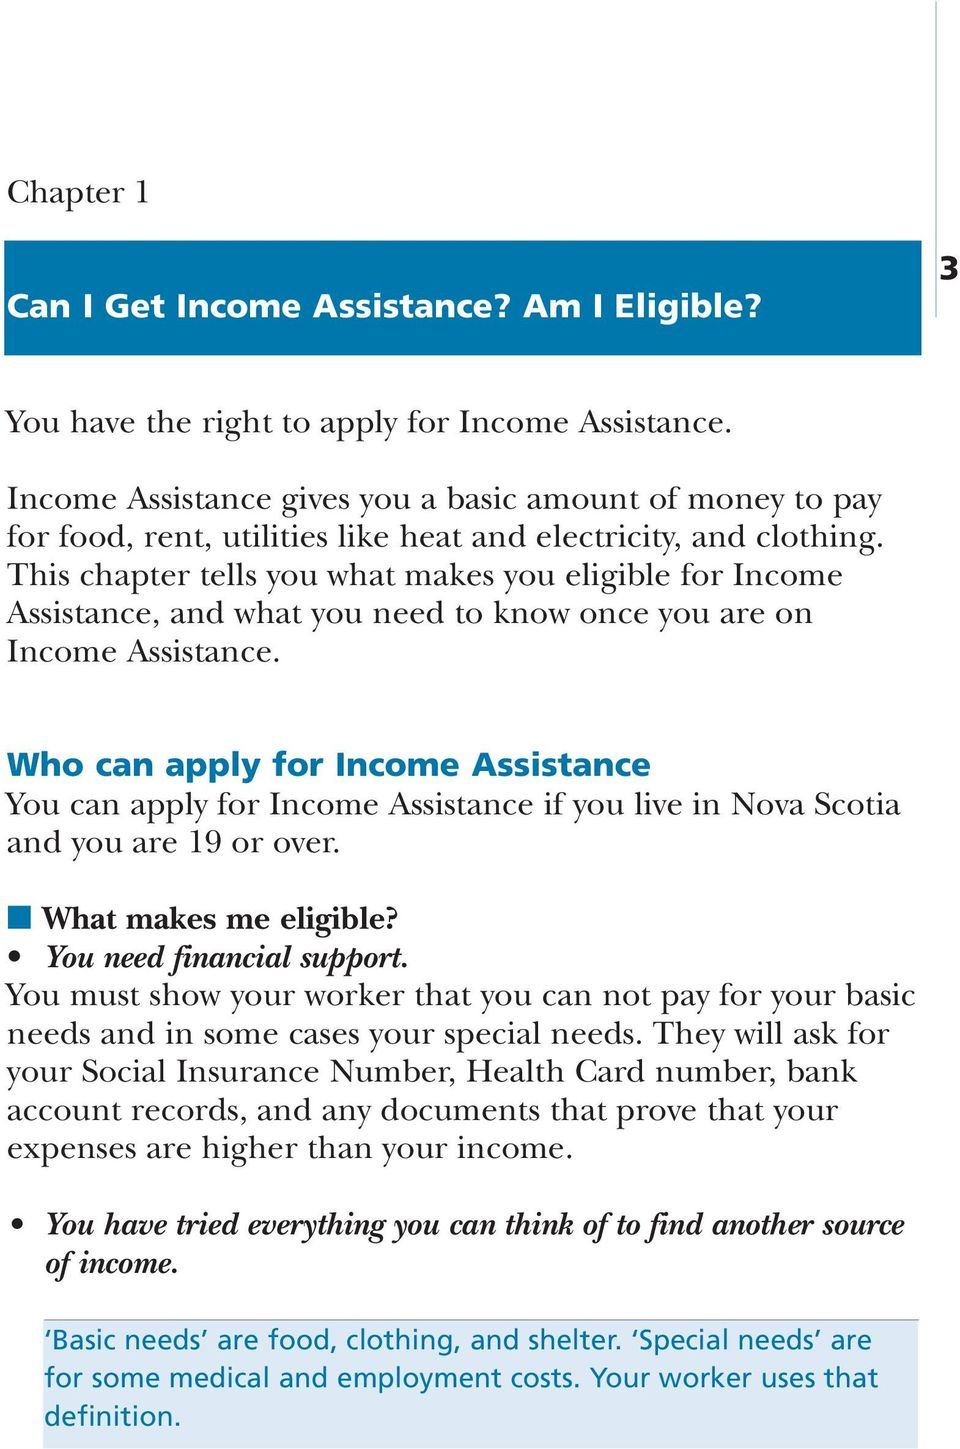 This chapter tells you what makes you eligible for Income Assistance, and what you need to know once you are on Income Assistance.